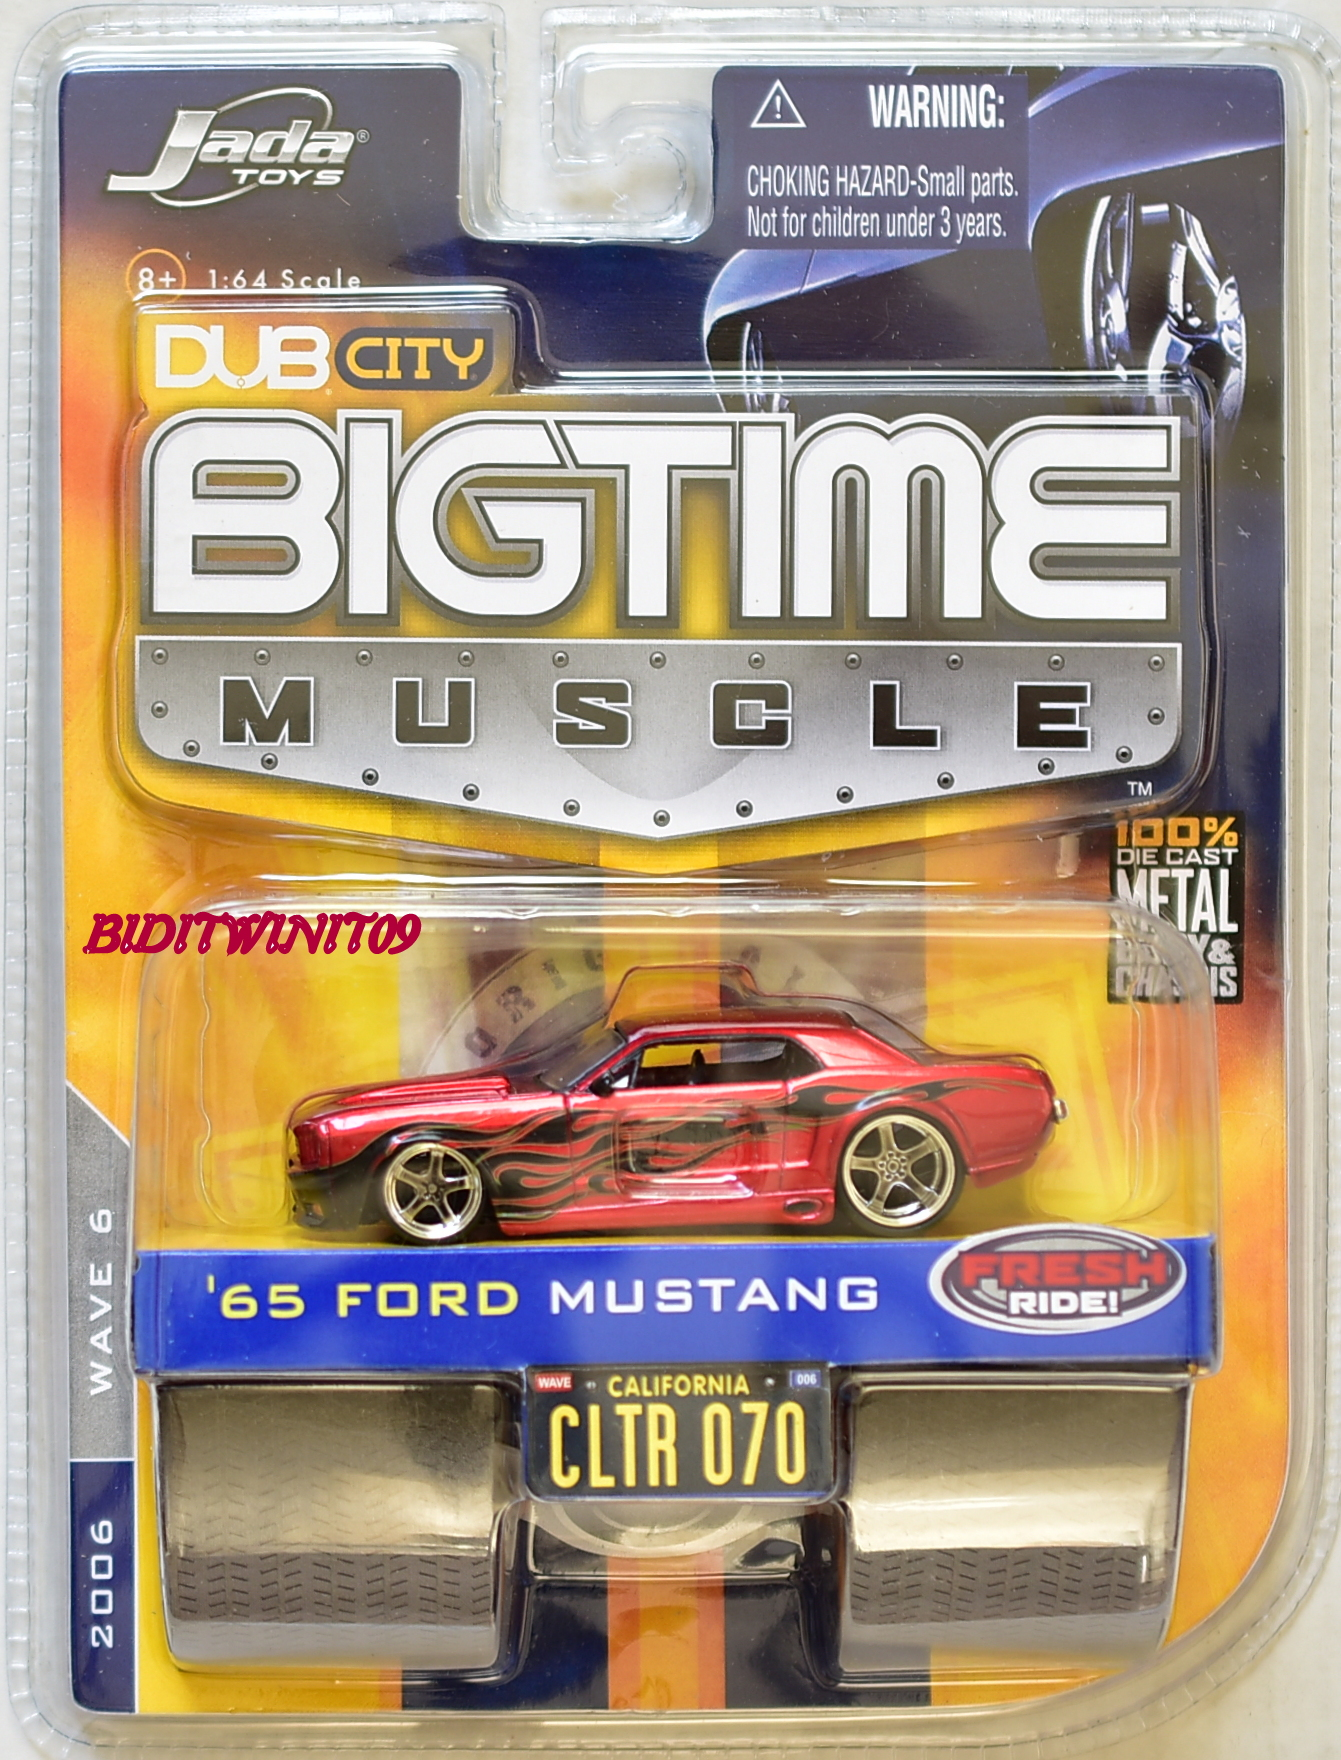 JADA TOYS 2006 WAVE 6 DUB CITY BIGTIME MUSCLE '65 FORD MUSTANG CLTR 070 E+